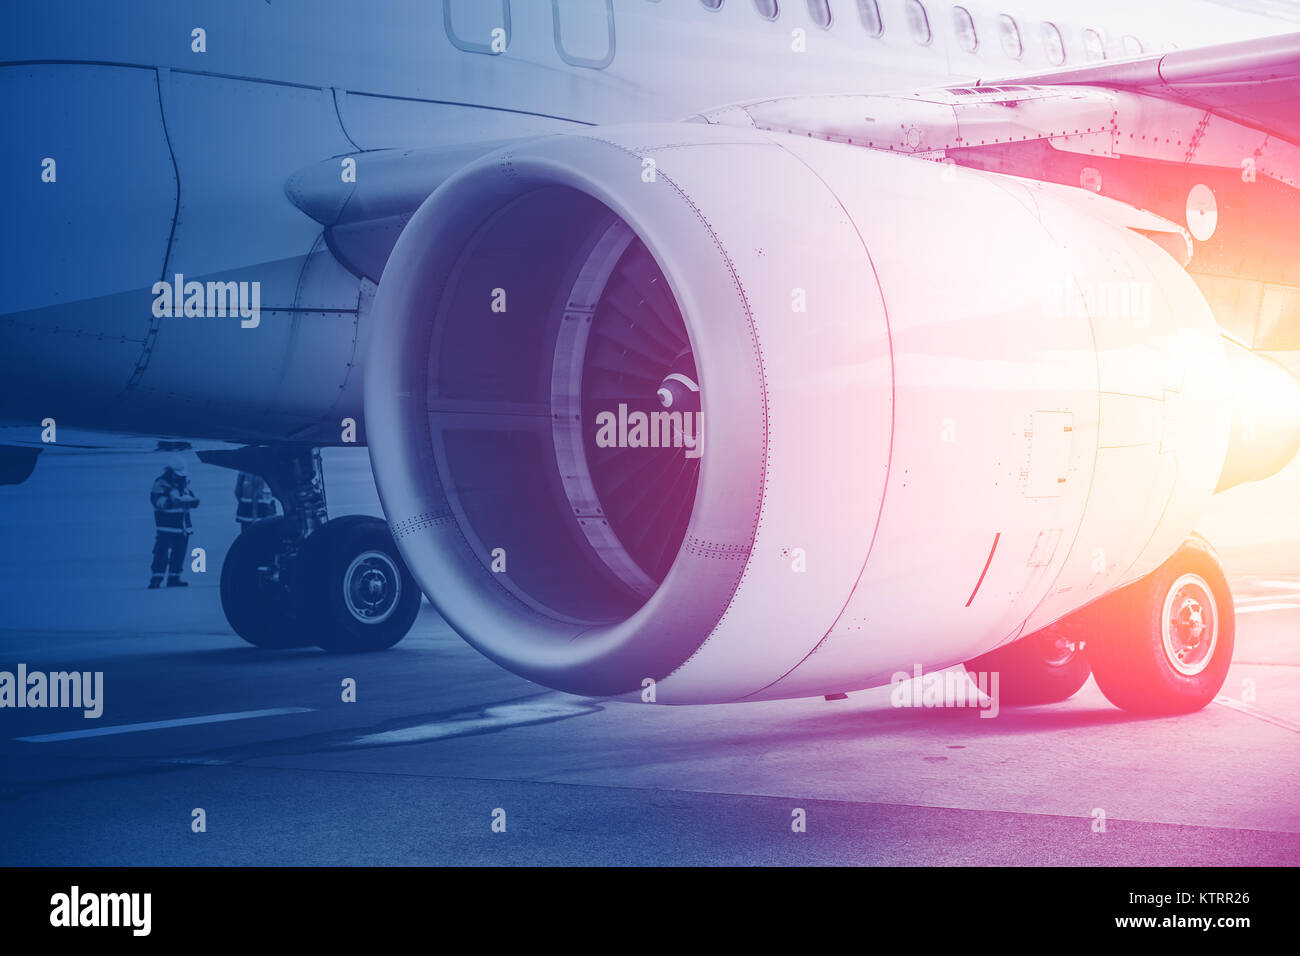 Jet turbine engine Flight for future of Aviation in Commercial aircraft background concept. - Stock Image